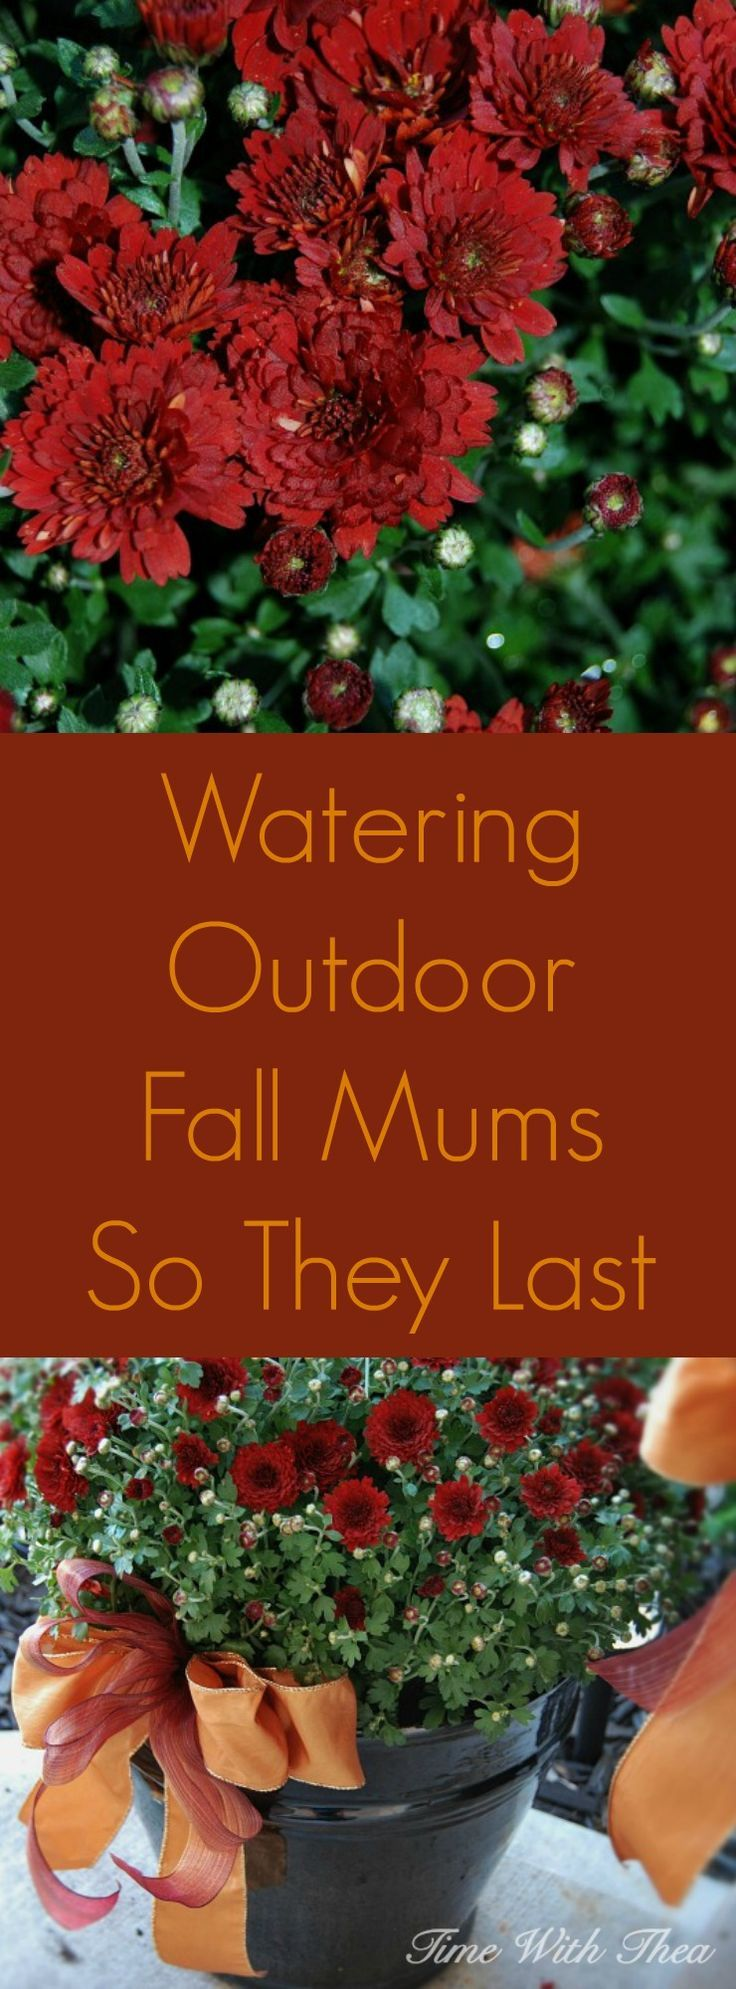 Watering Outdoor Fall Mums So They Last ~ Time With Thea